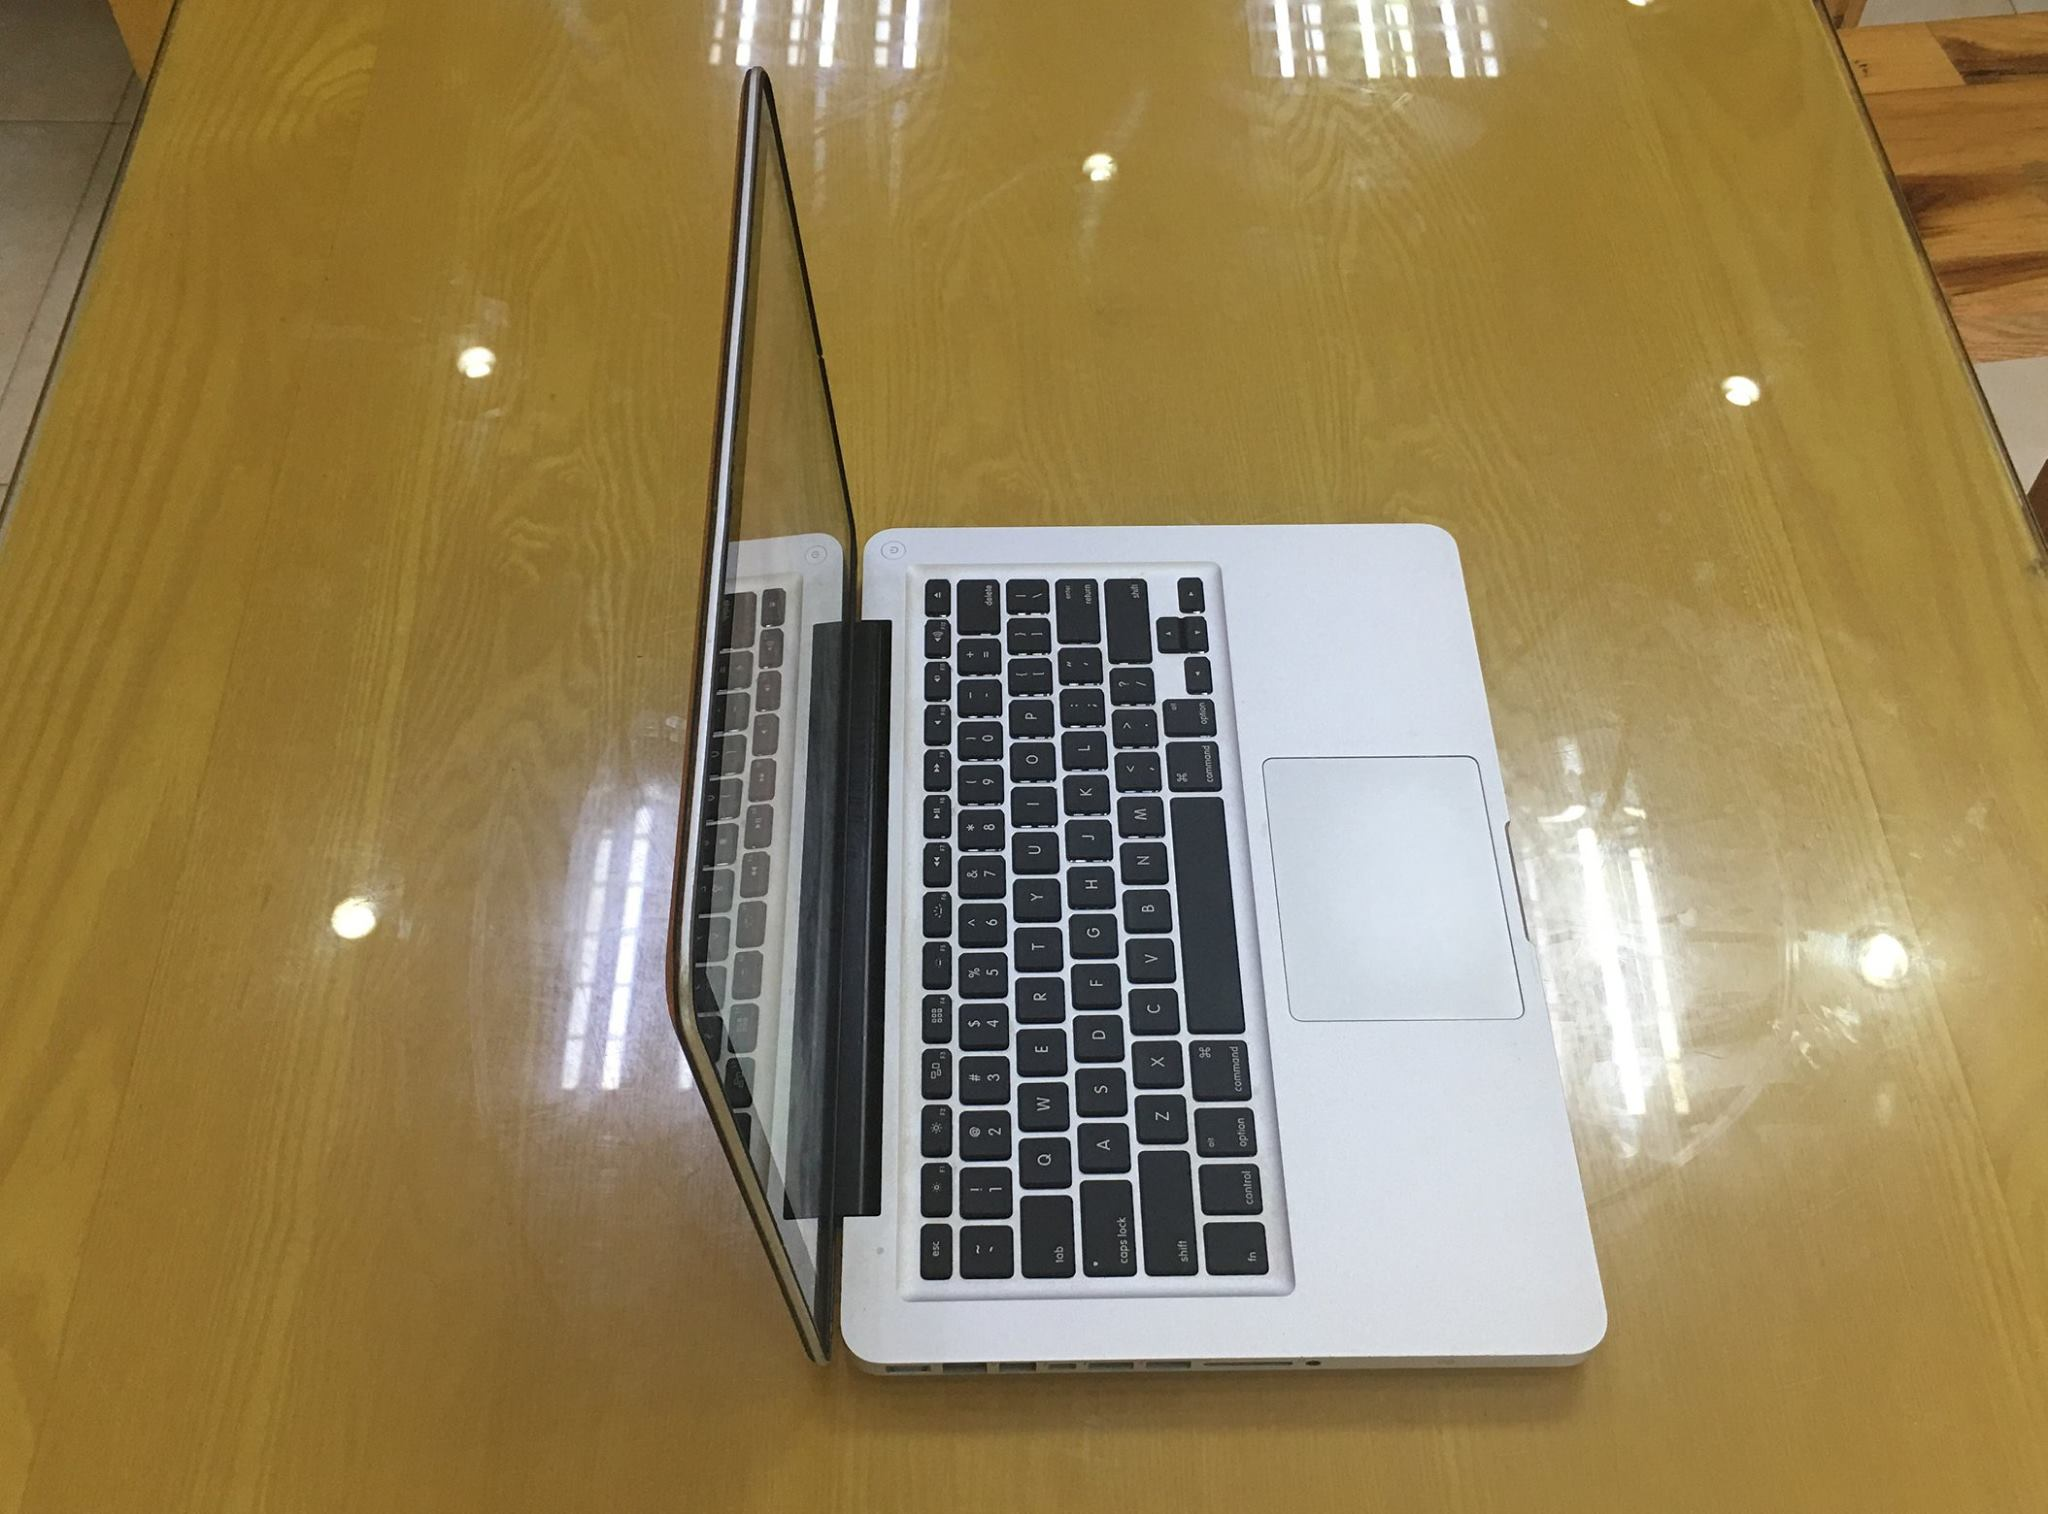 Macbook Pro MC700 boc da-7.jpg